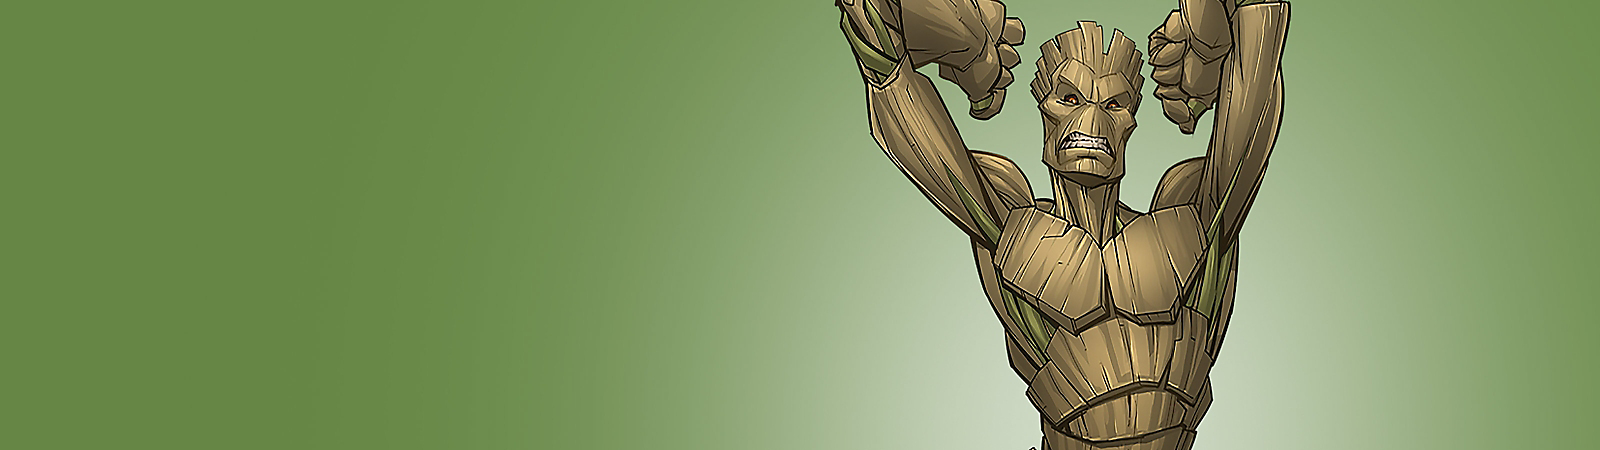 Background image of Groot